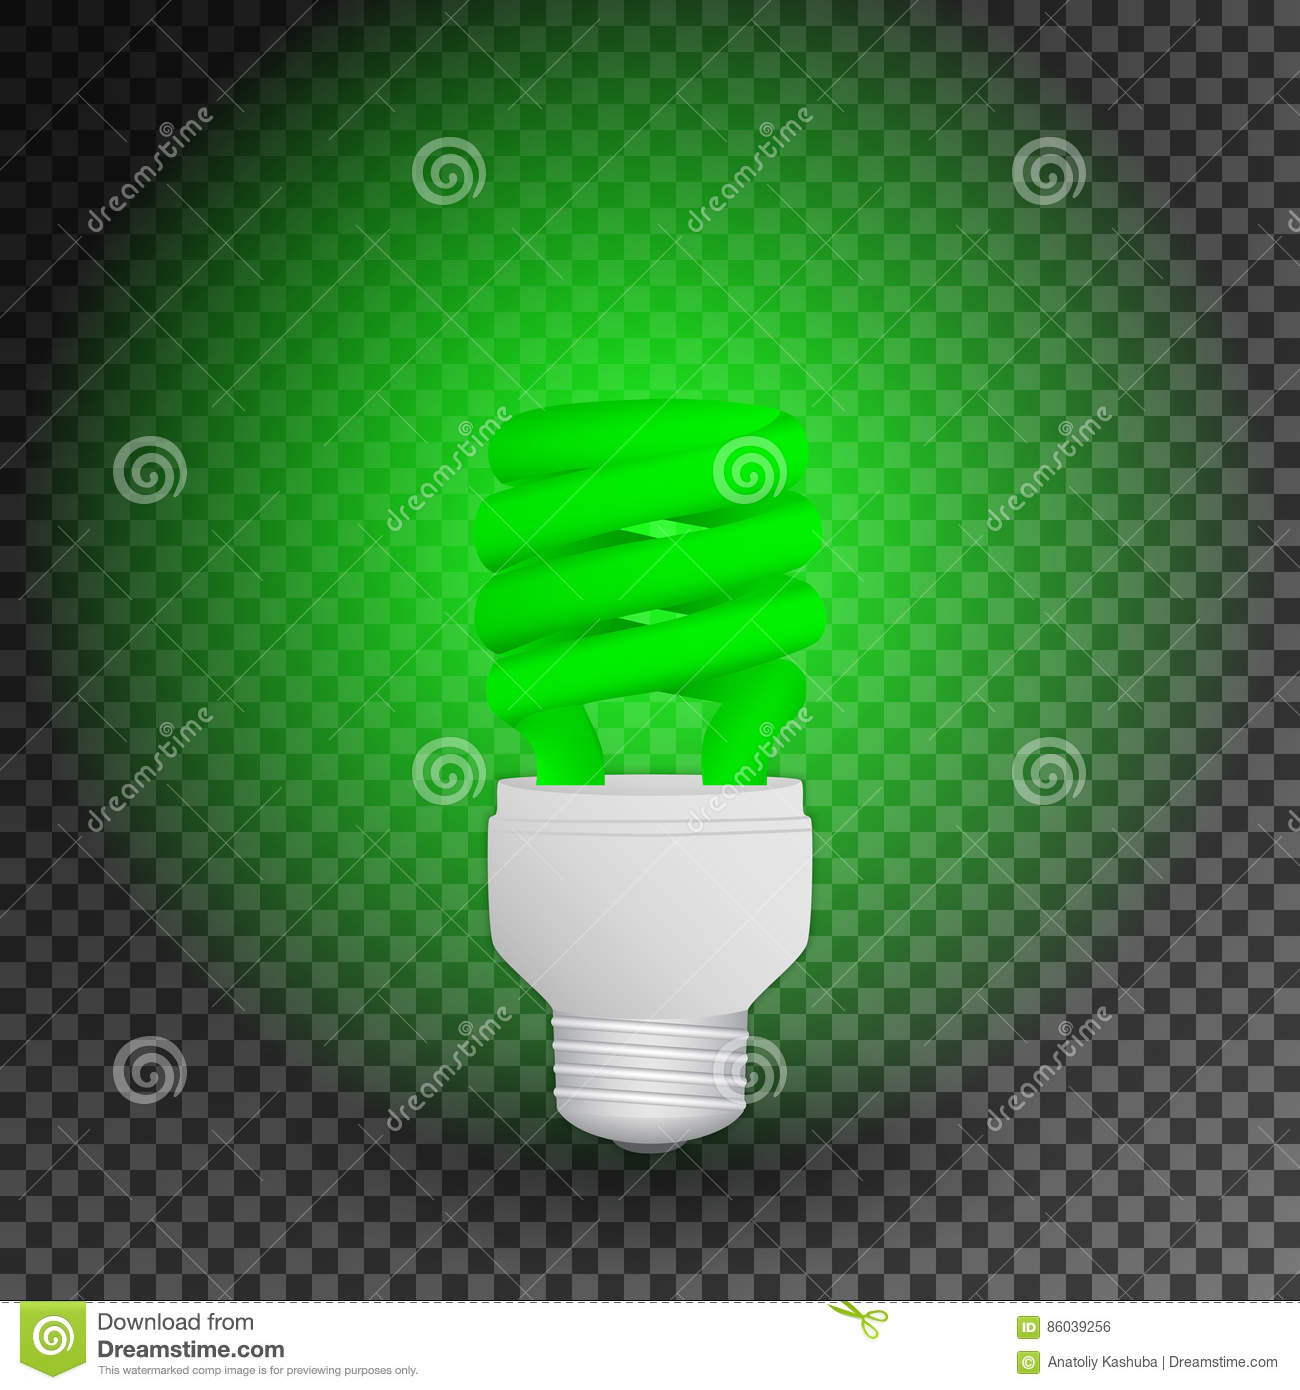 Royalty Free Vector  Download Fluorescent Green Economical Light Bulb  Glowing On A Transparent Background  Save Energy Lamp. Fluorescent Green Economical Light Bulb Glowing On A Transparent